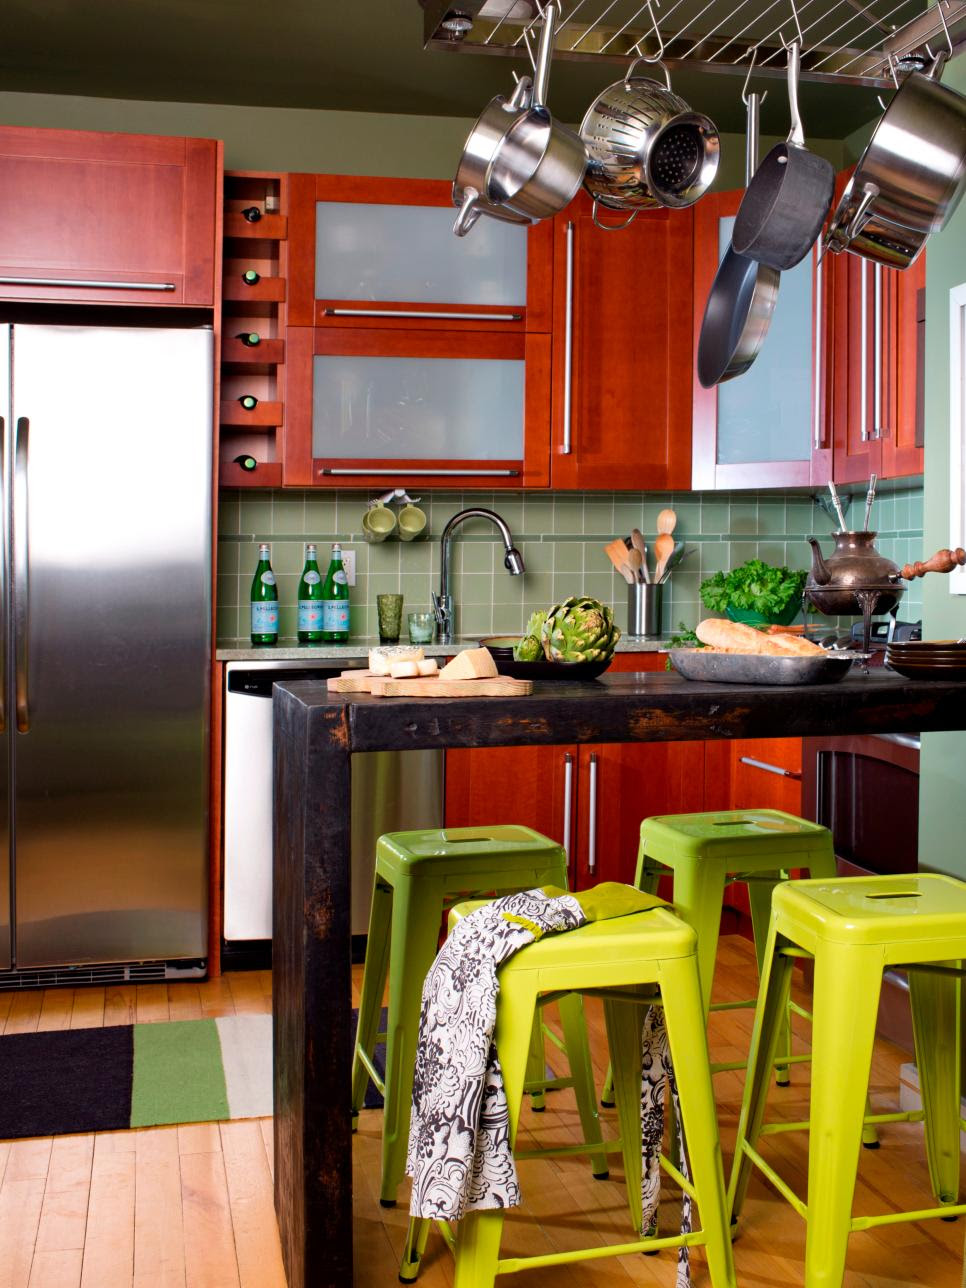 Space-Saving Ideas for Making Room in the Kitchen | DIY